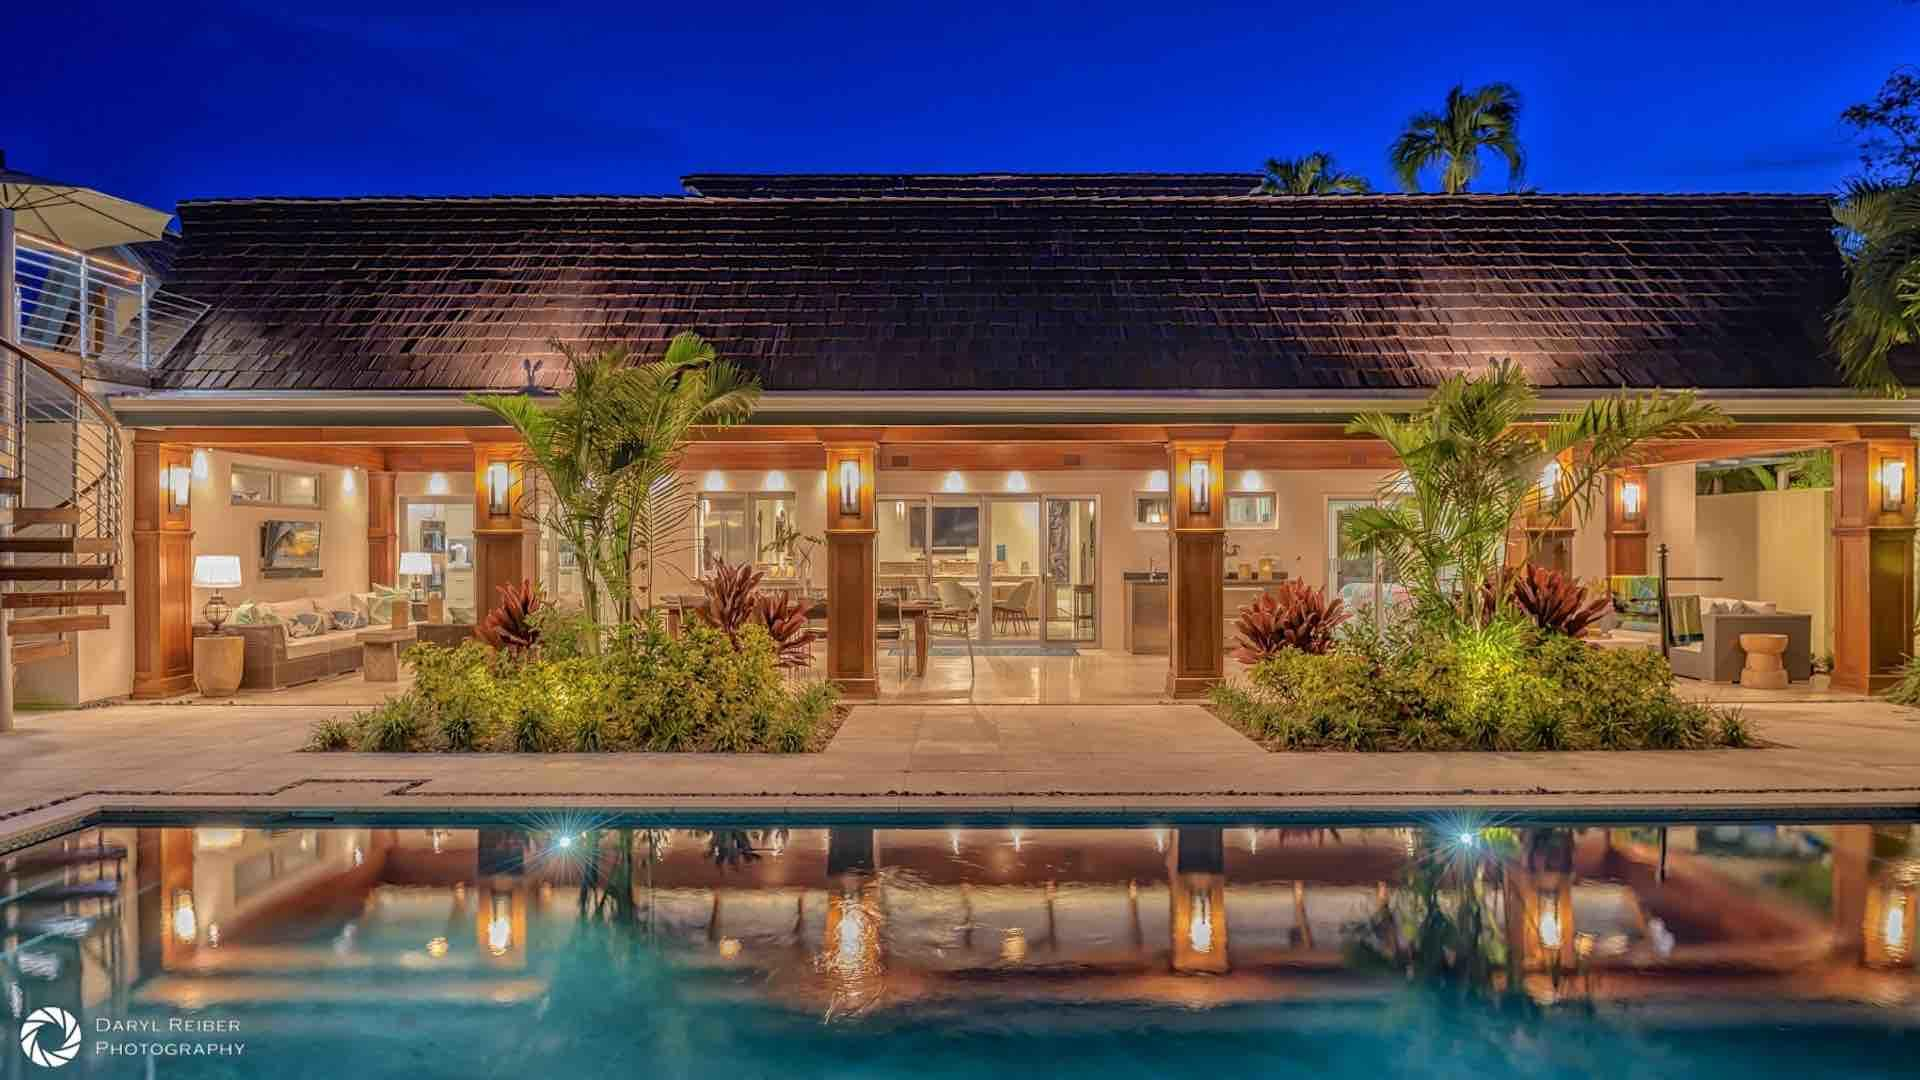 The grounds of this home are absolutely stunning at night...